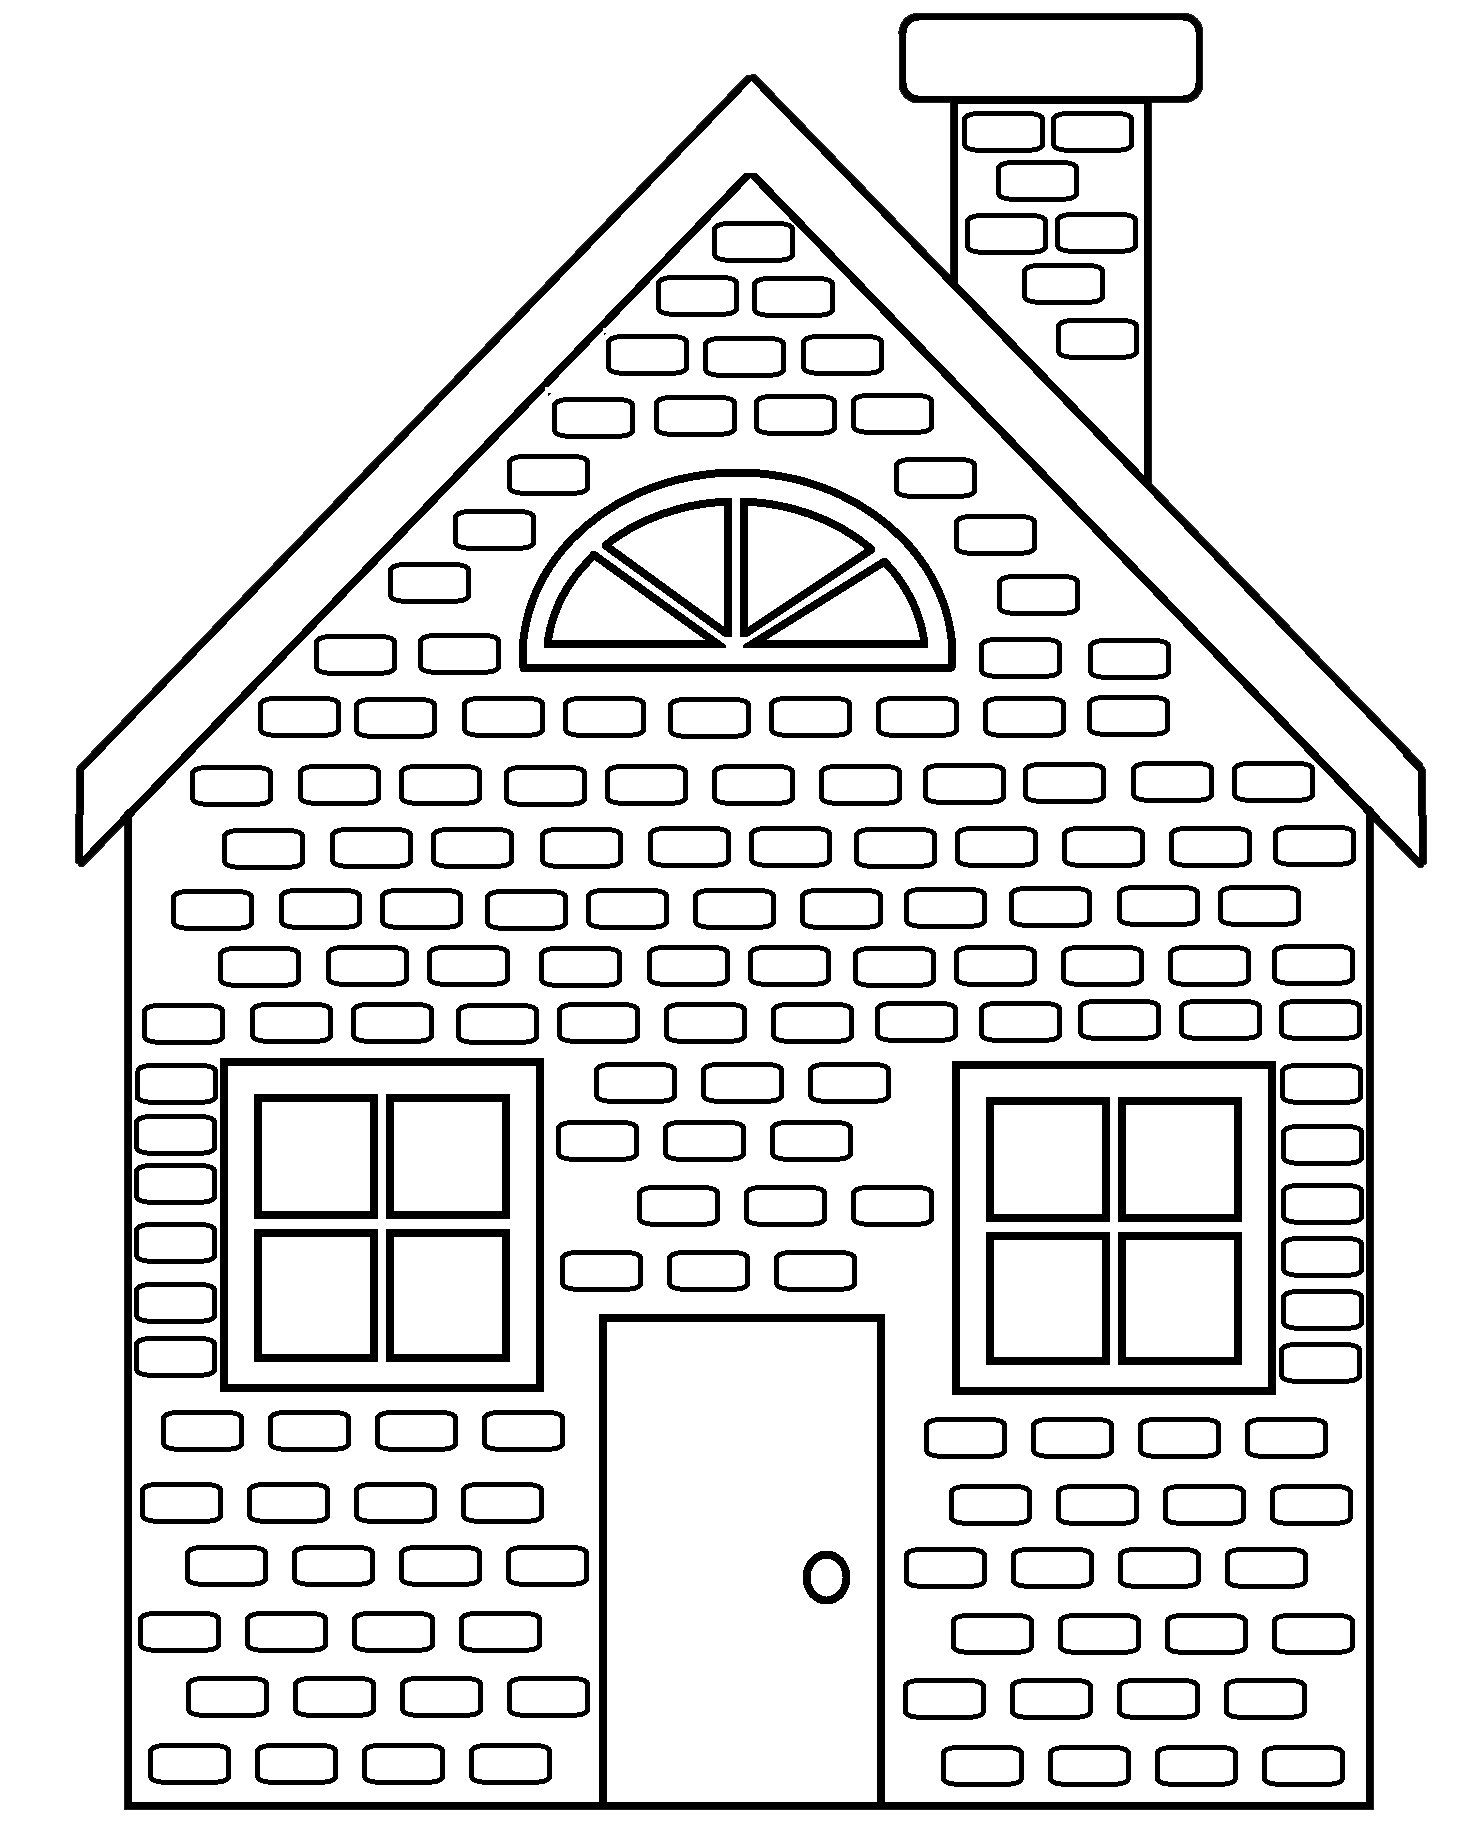 Three little pigs brick house clipart black and white jpg black and white stock Graphics by Ruth - 3 Little Pigs | 3 Little Pigs | Pinterest ... jpg black and white stock